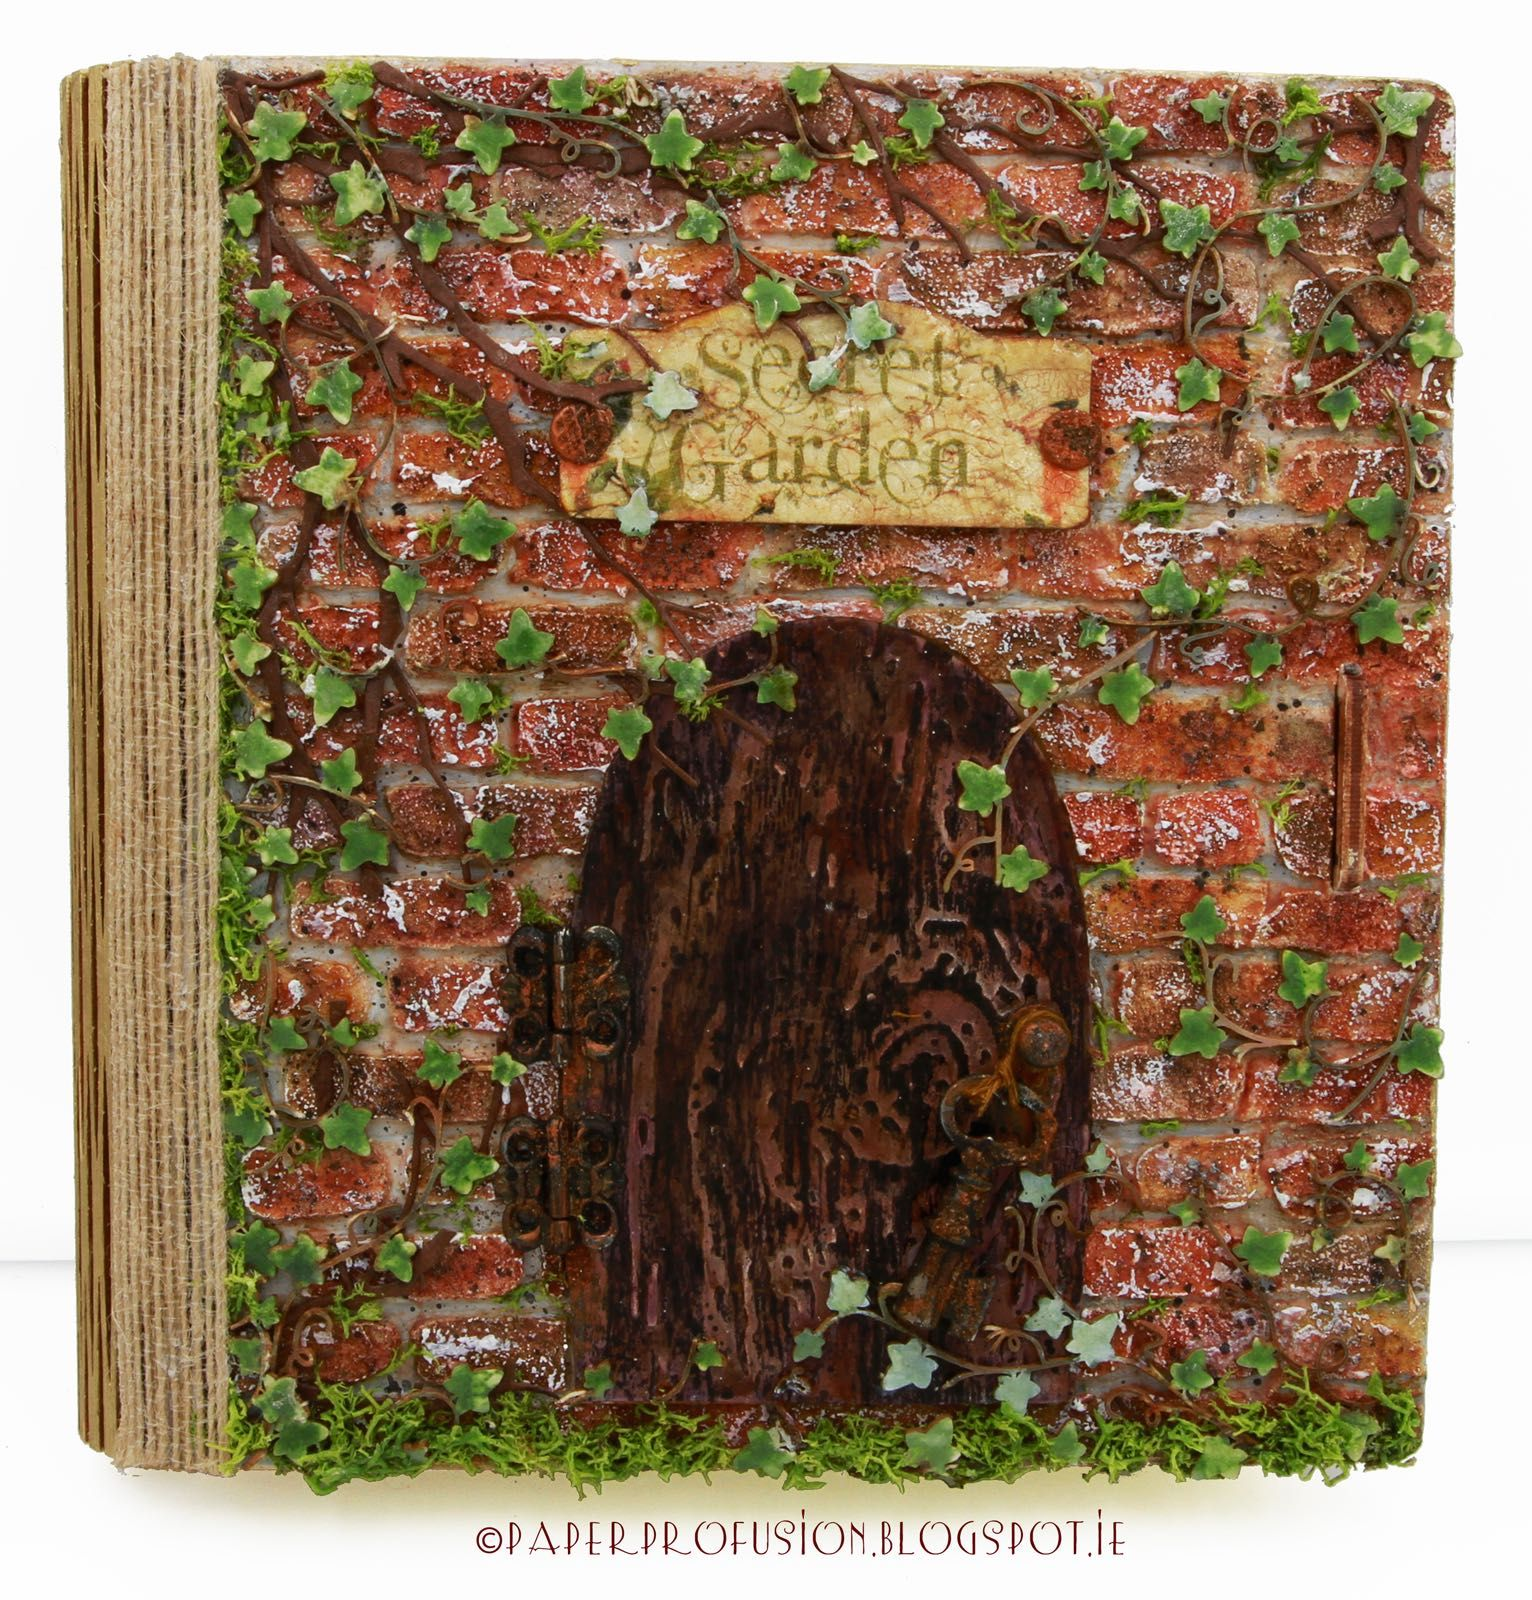 Paper profusion Based on a book -secret-garden